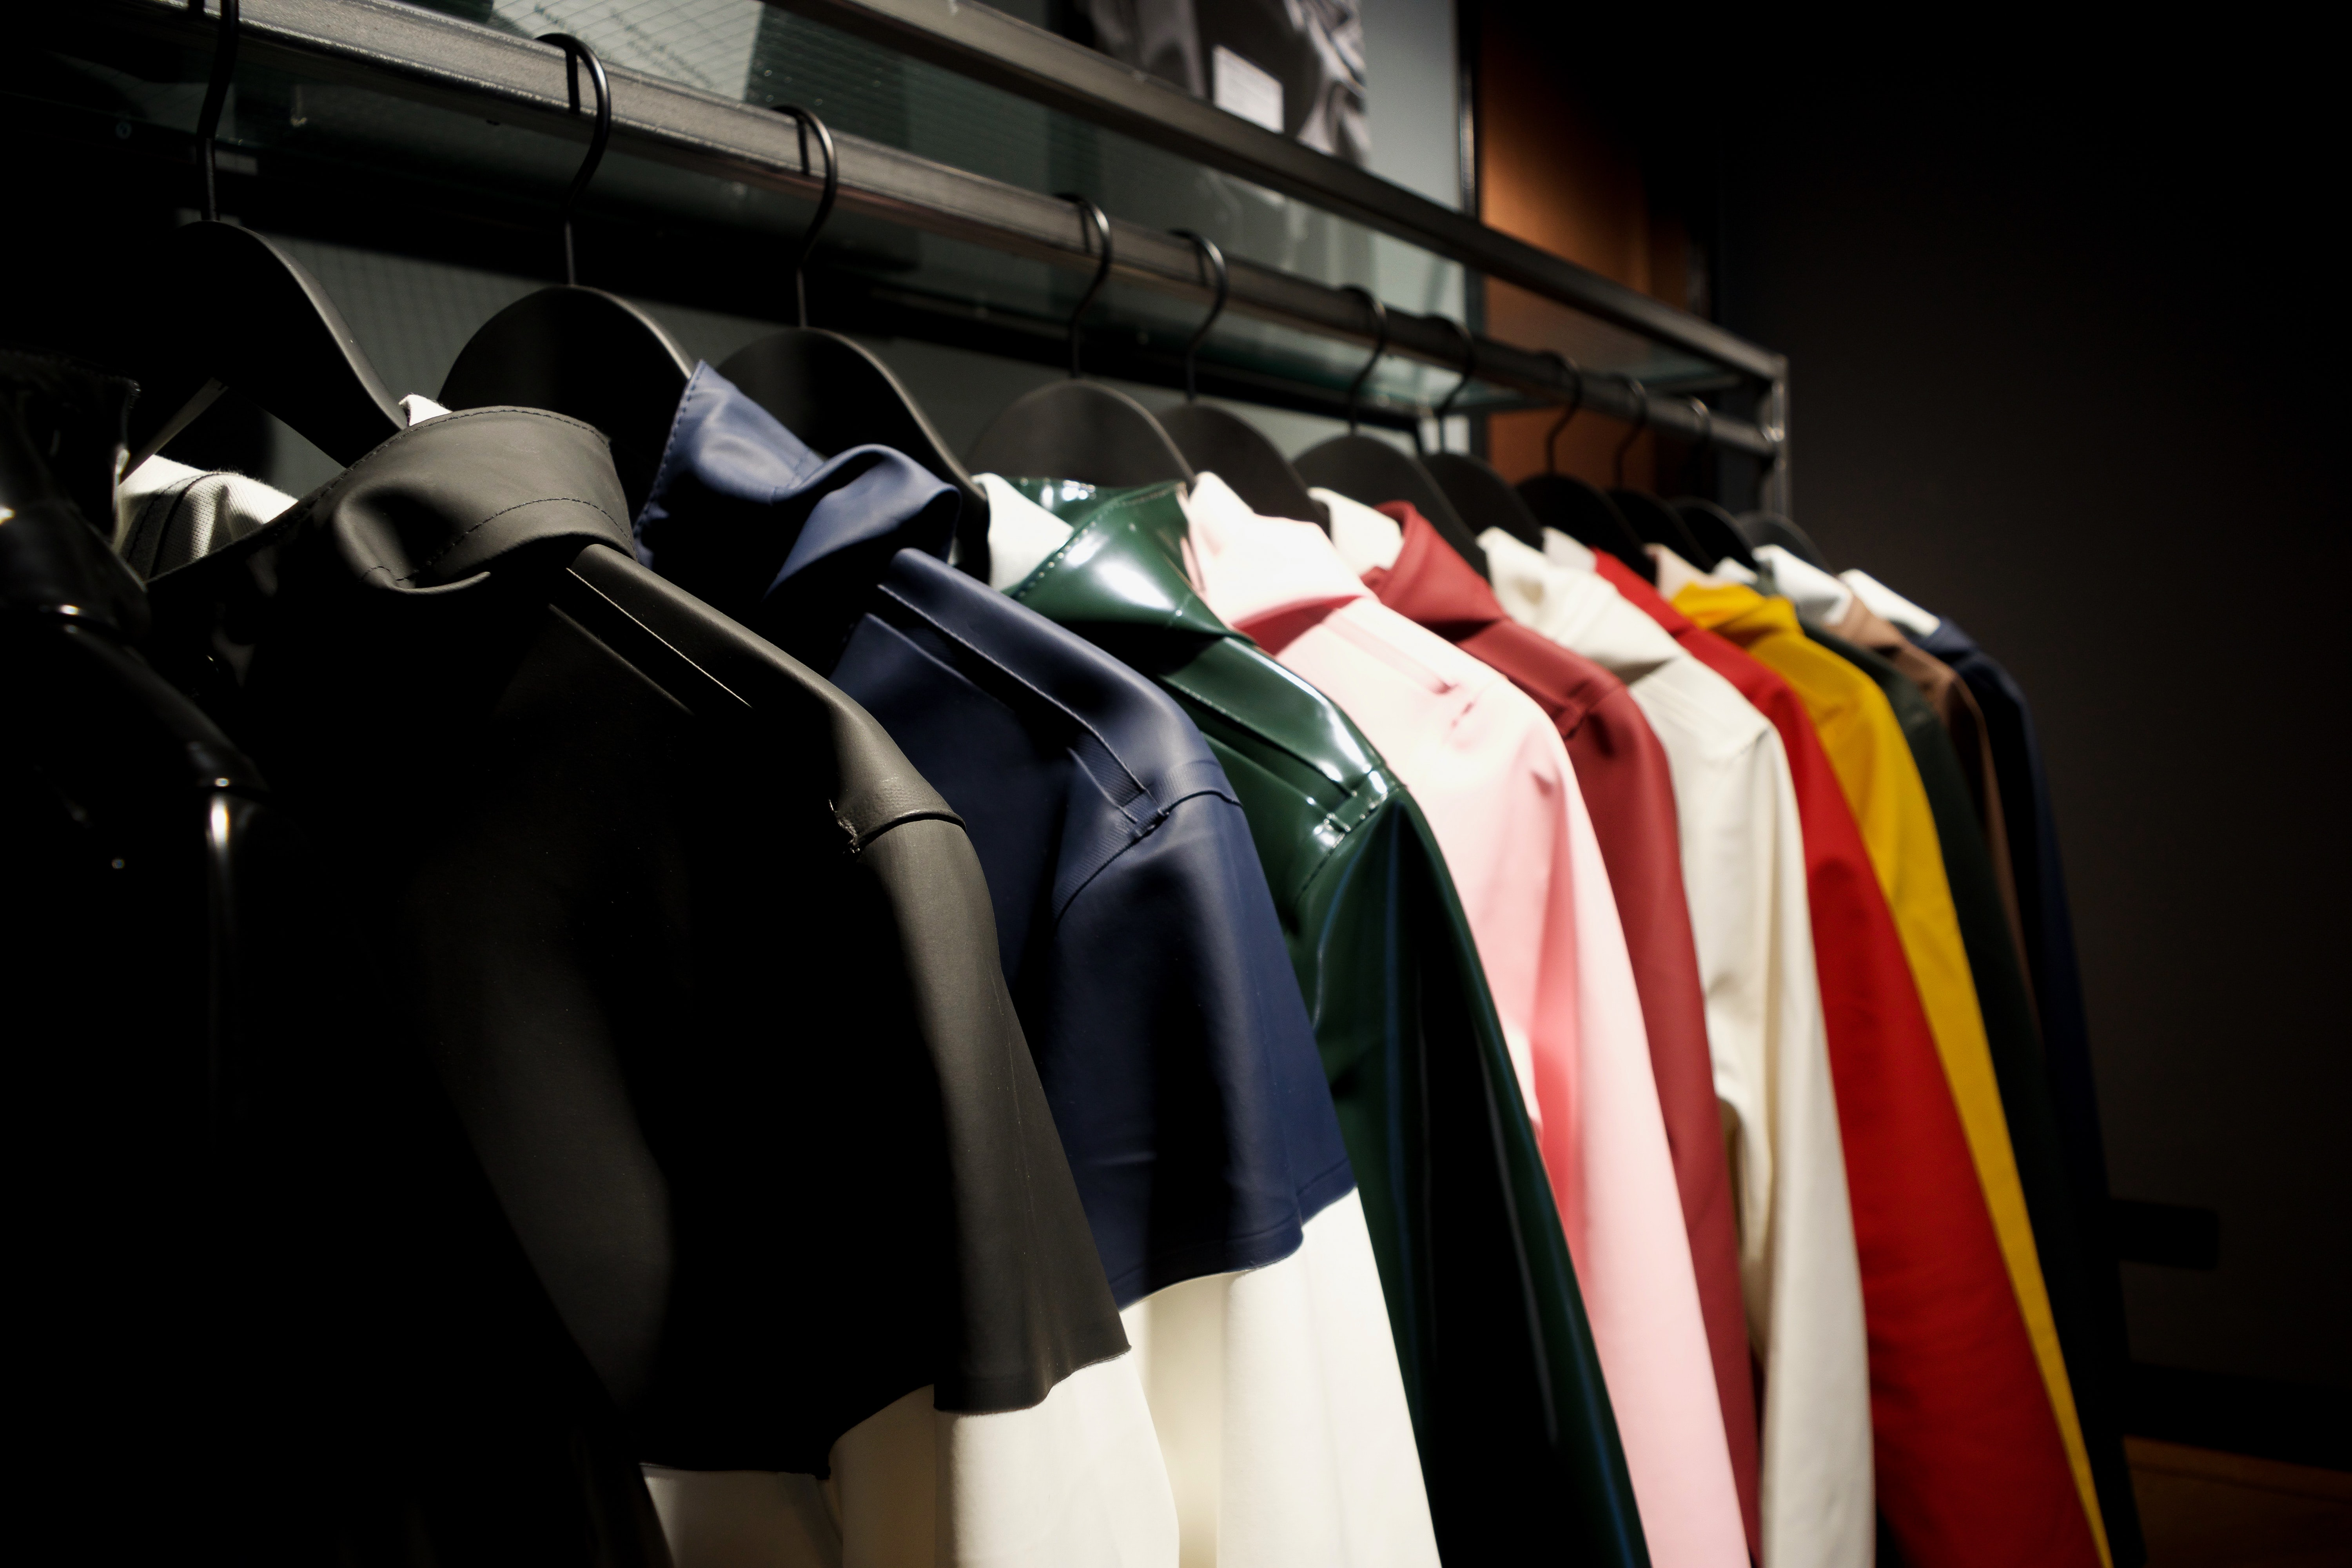 selective focus photography of hanged leather jackets with different colors